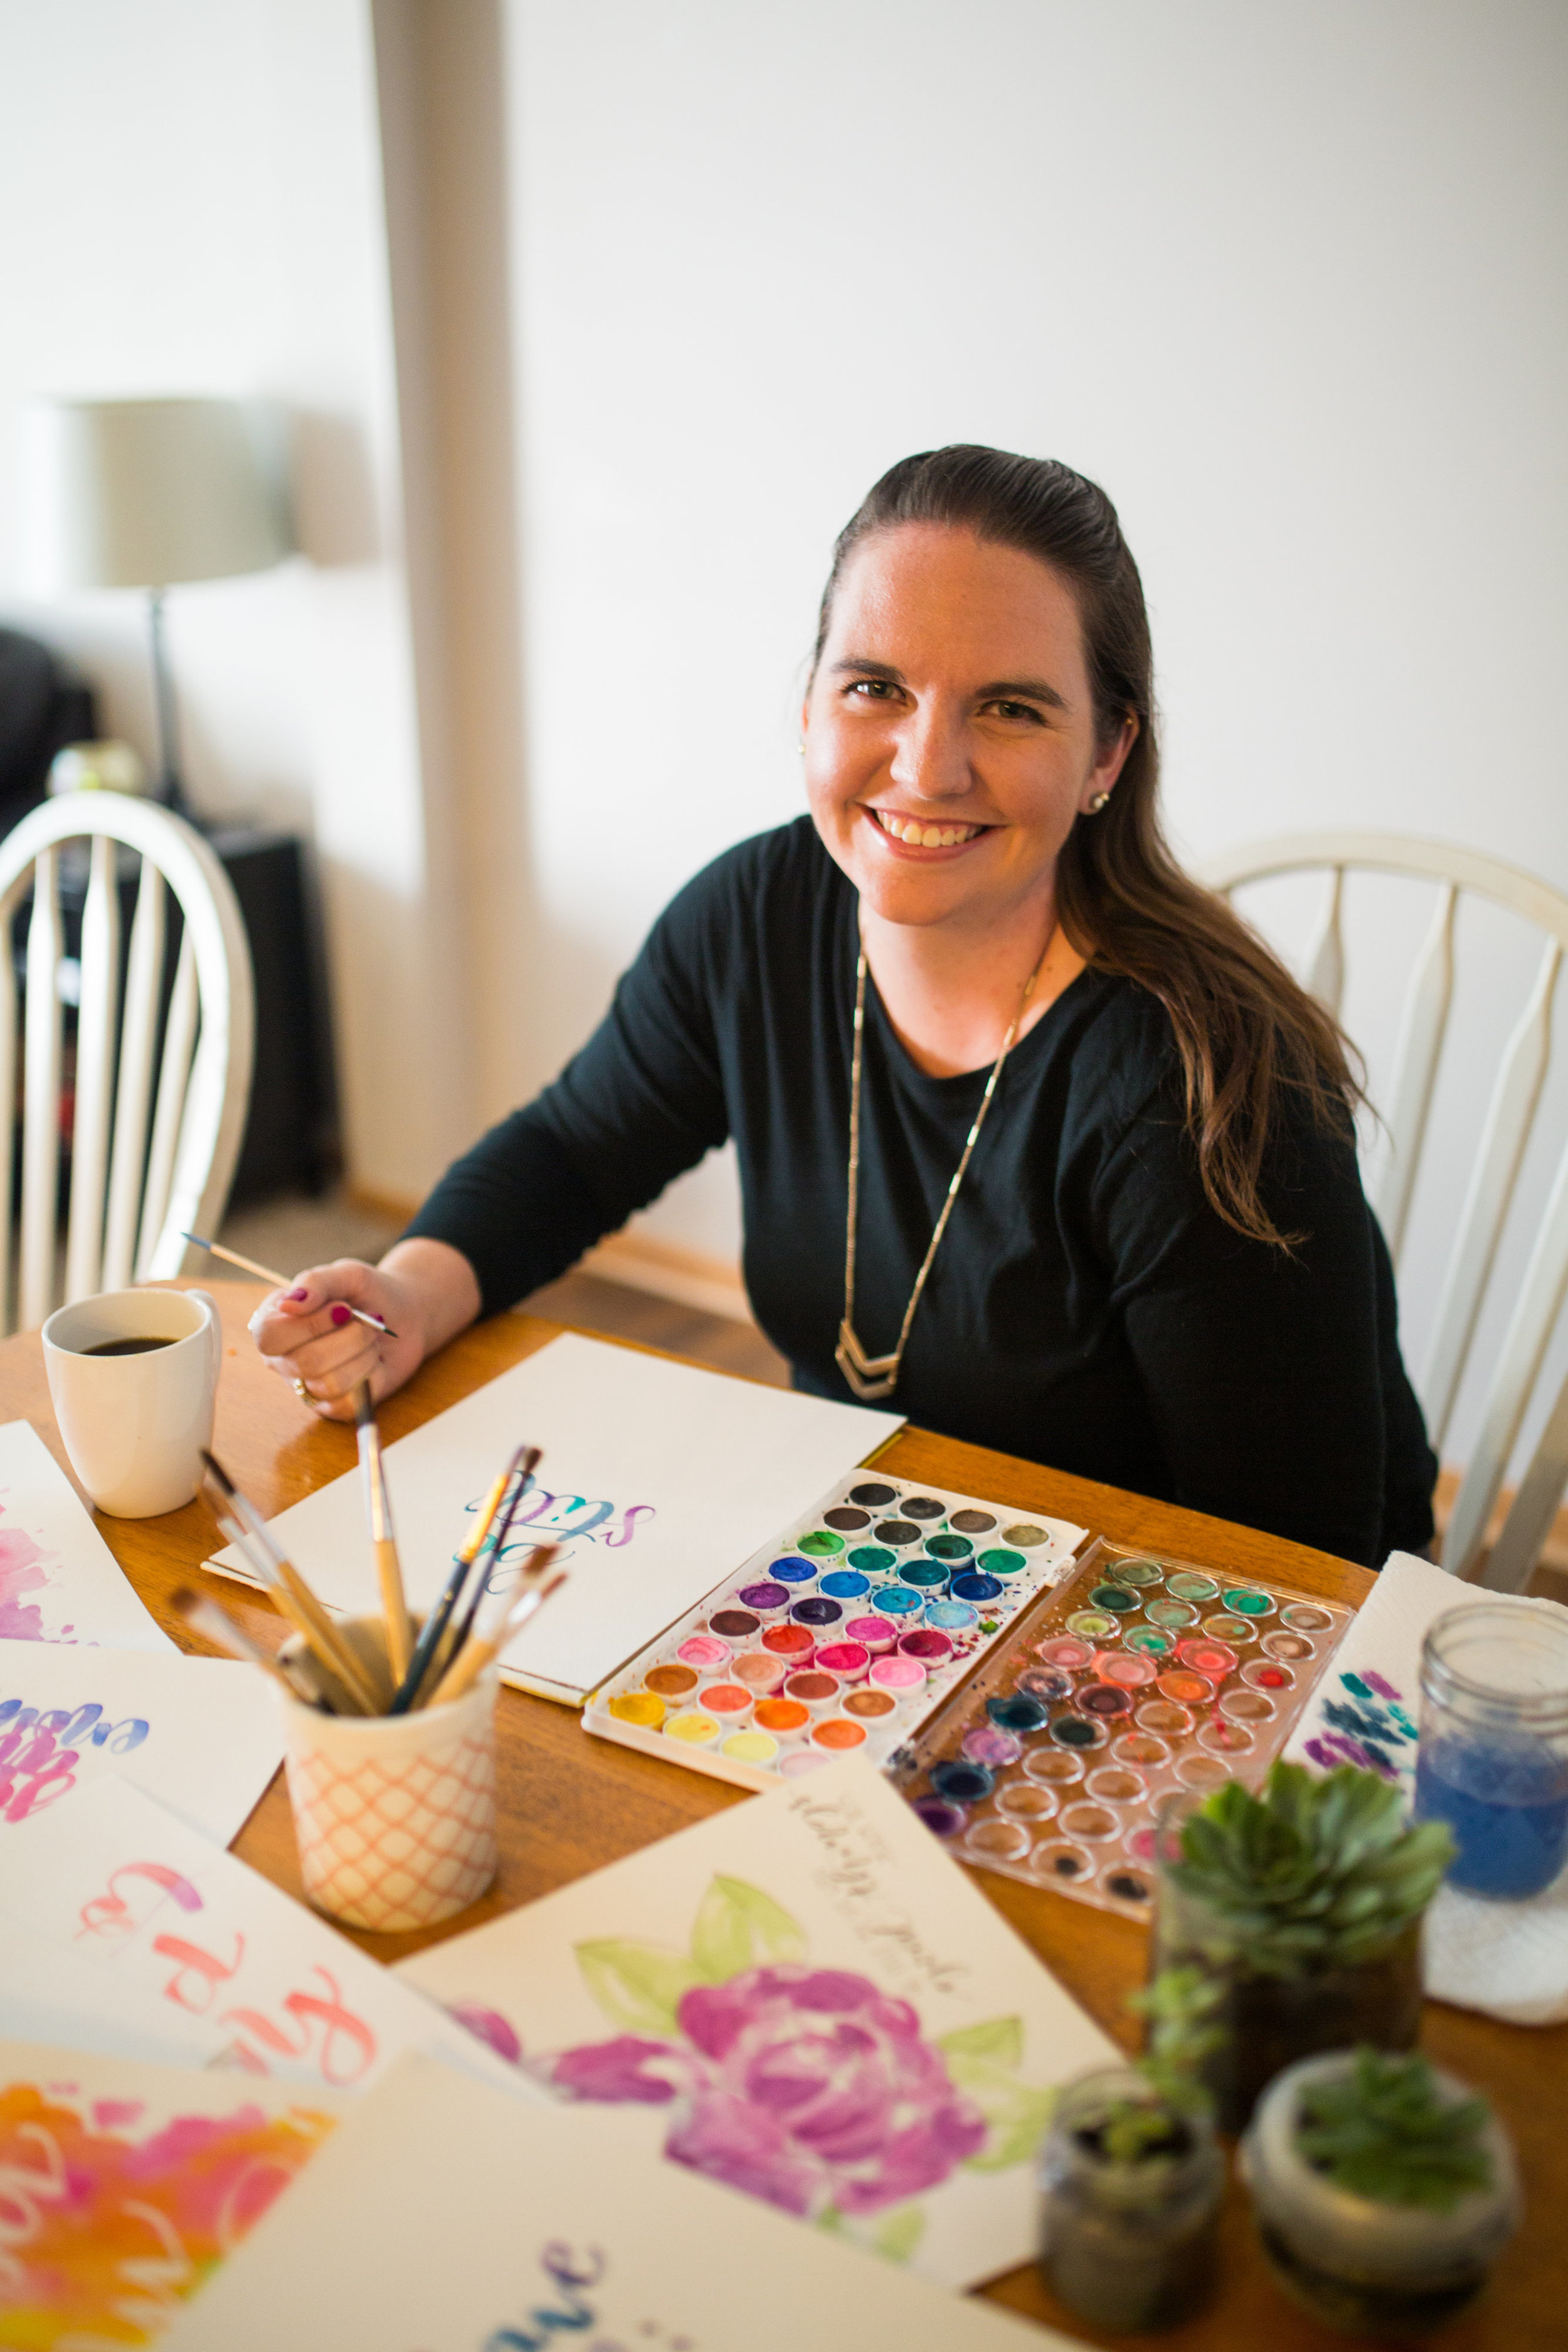 Meet Jillian - Jillian Cram is a freelance artist in Minneapolis, Minnesota, specialising in hand-lettering and watercolor pieces. From wedding invitations, to watercolor flowers, and everything in between, she creates custom, one-of-a-kind artwork that tells a story.